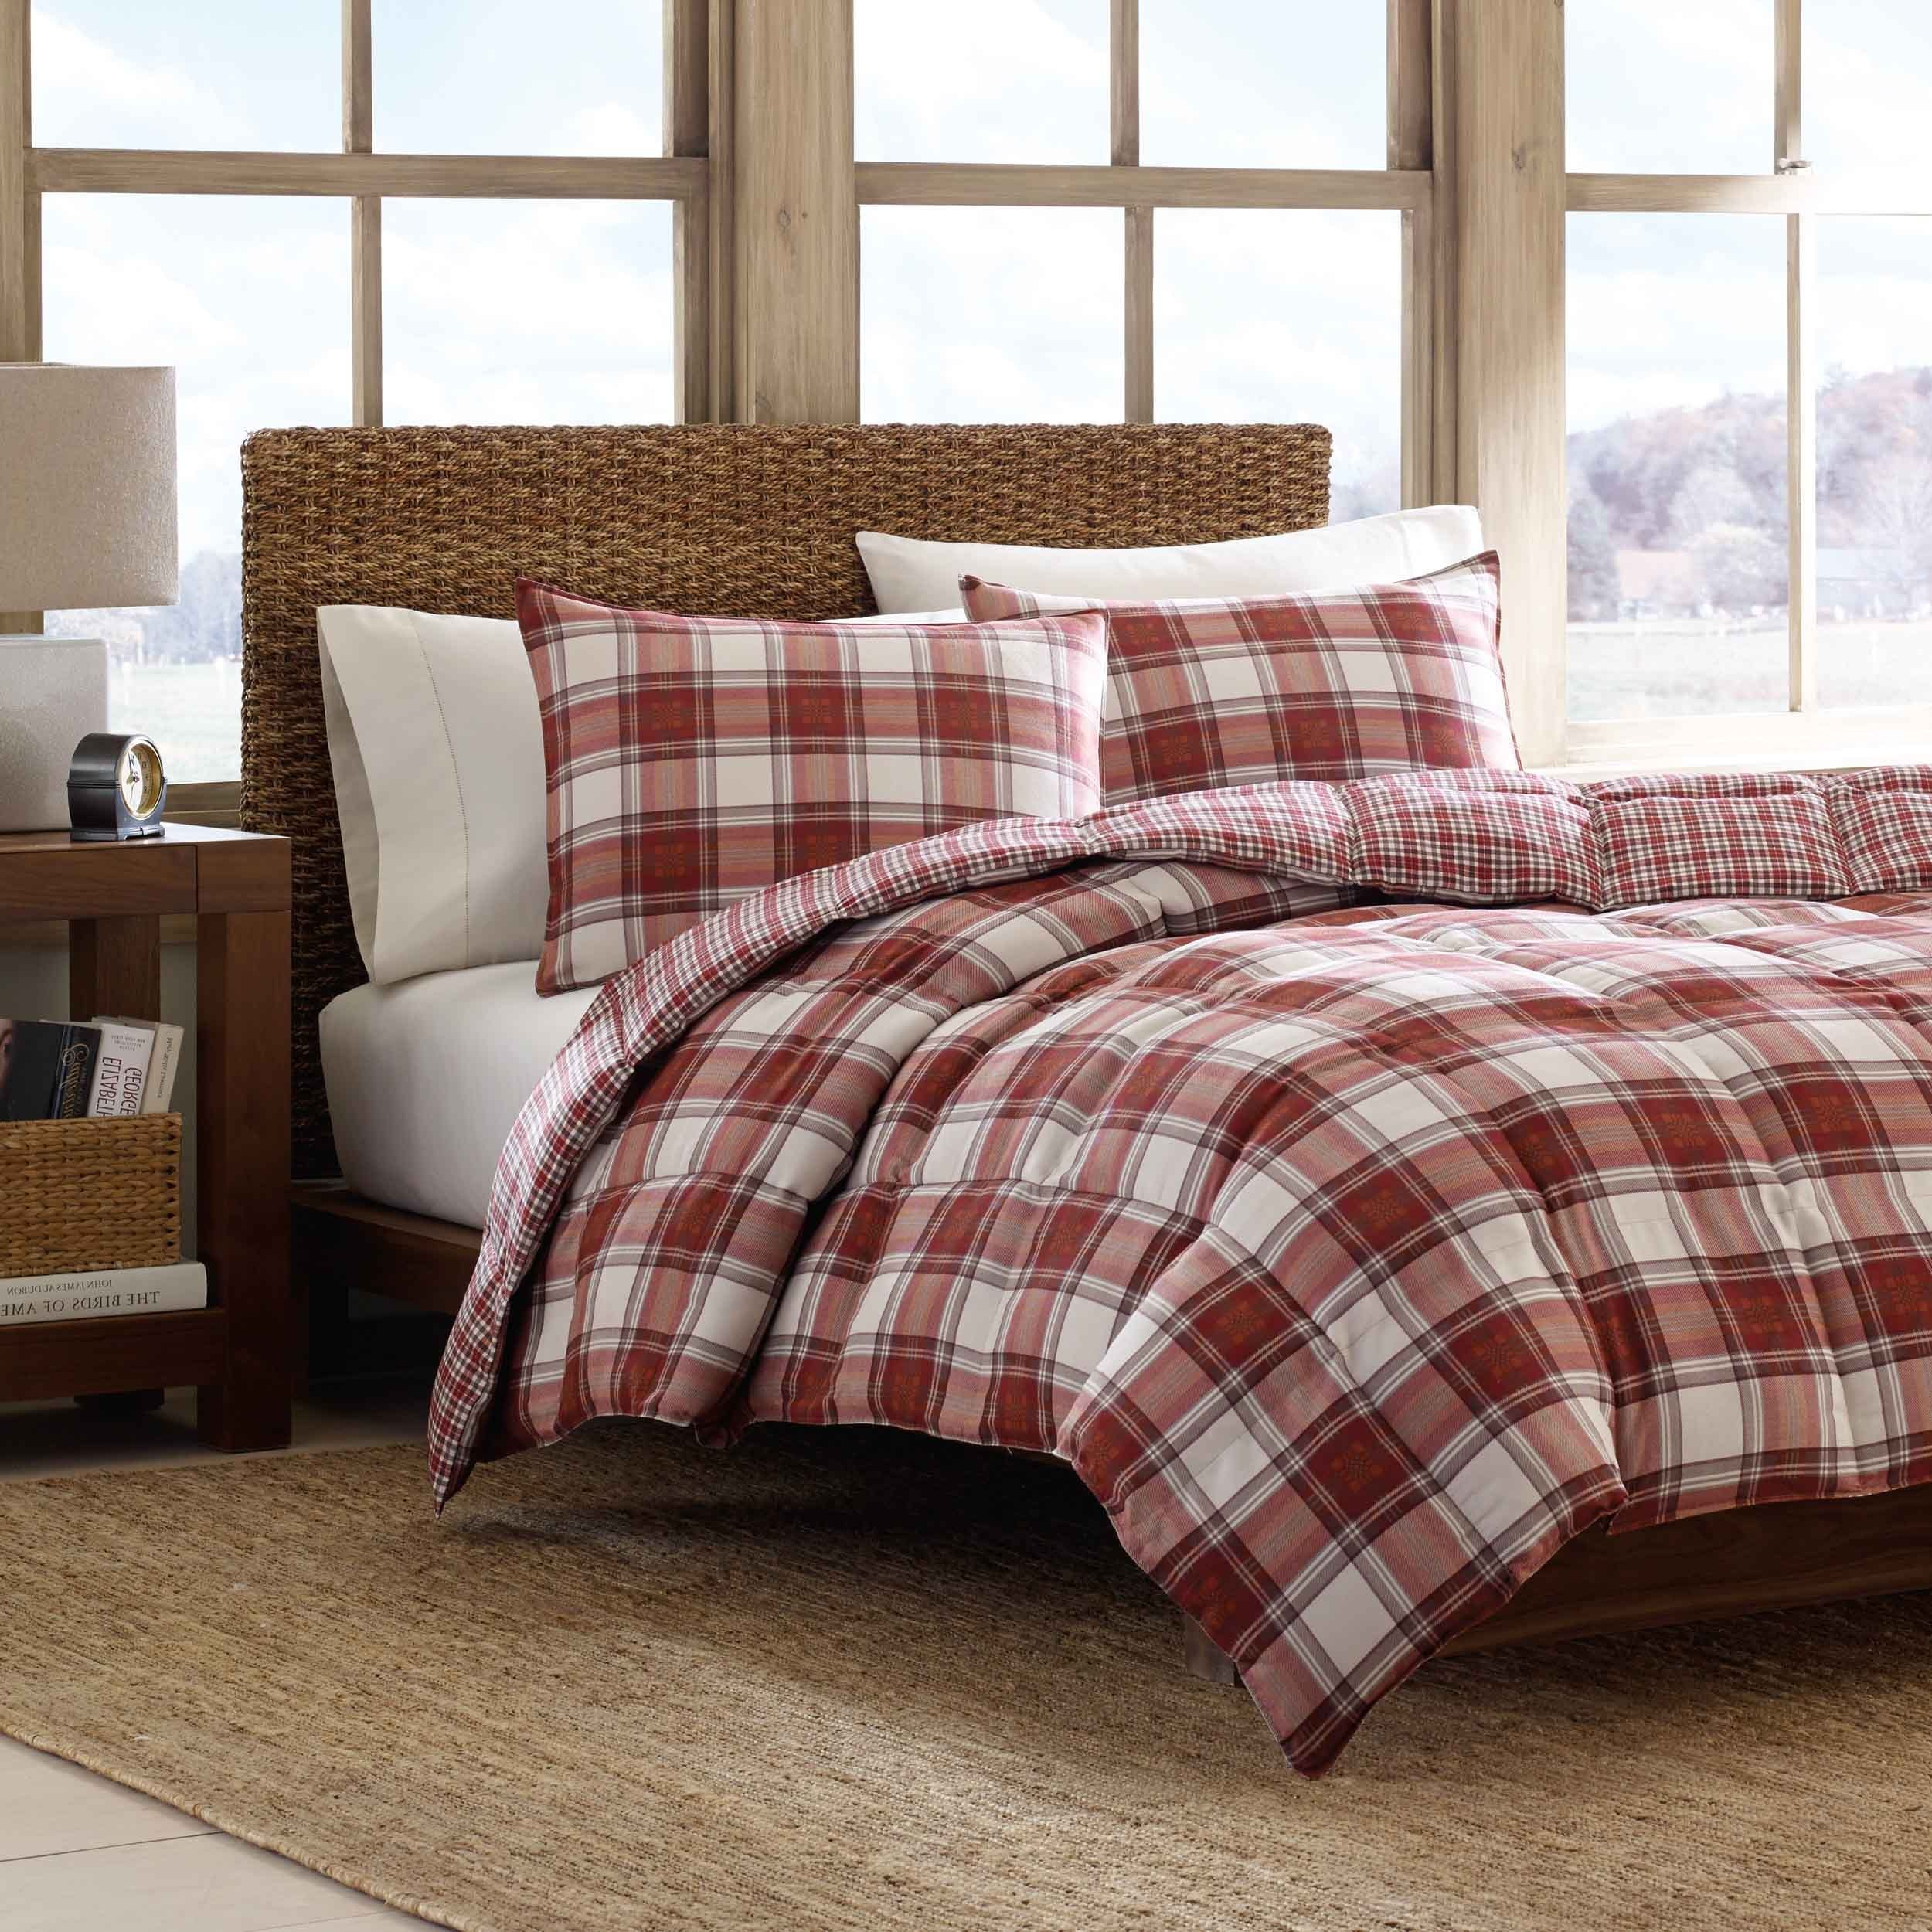 eddie overstock shipping bath bedding bauer white mountain free sets plaid black set comforter product today